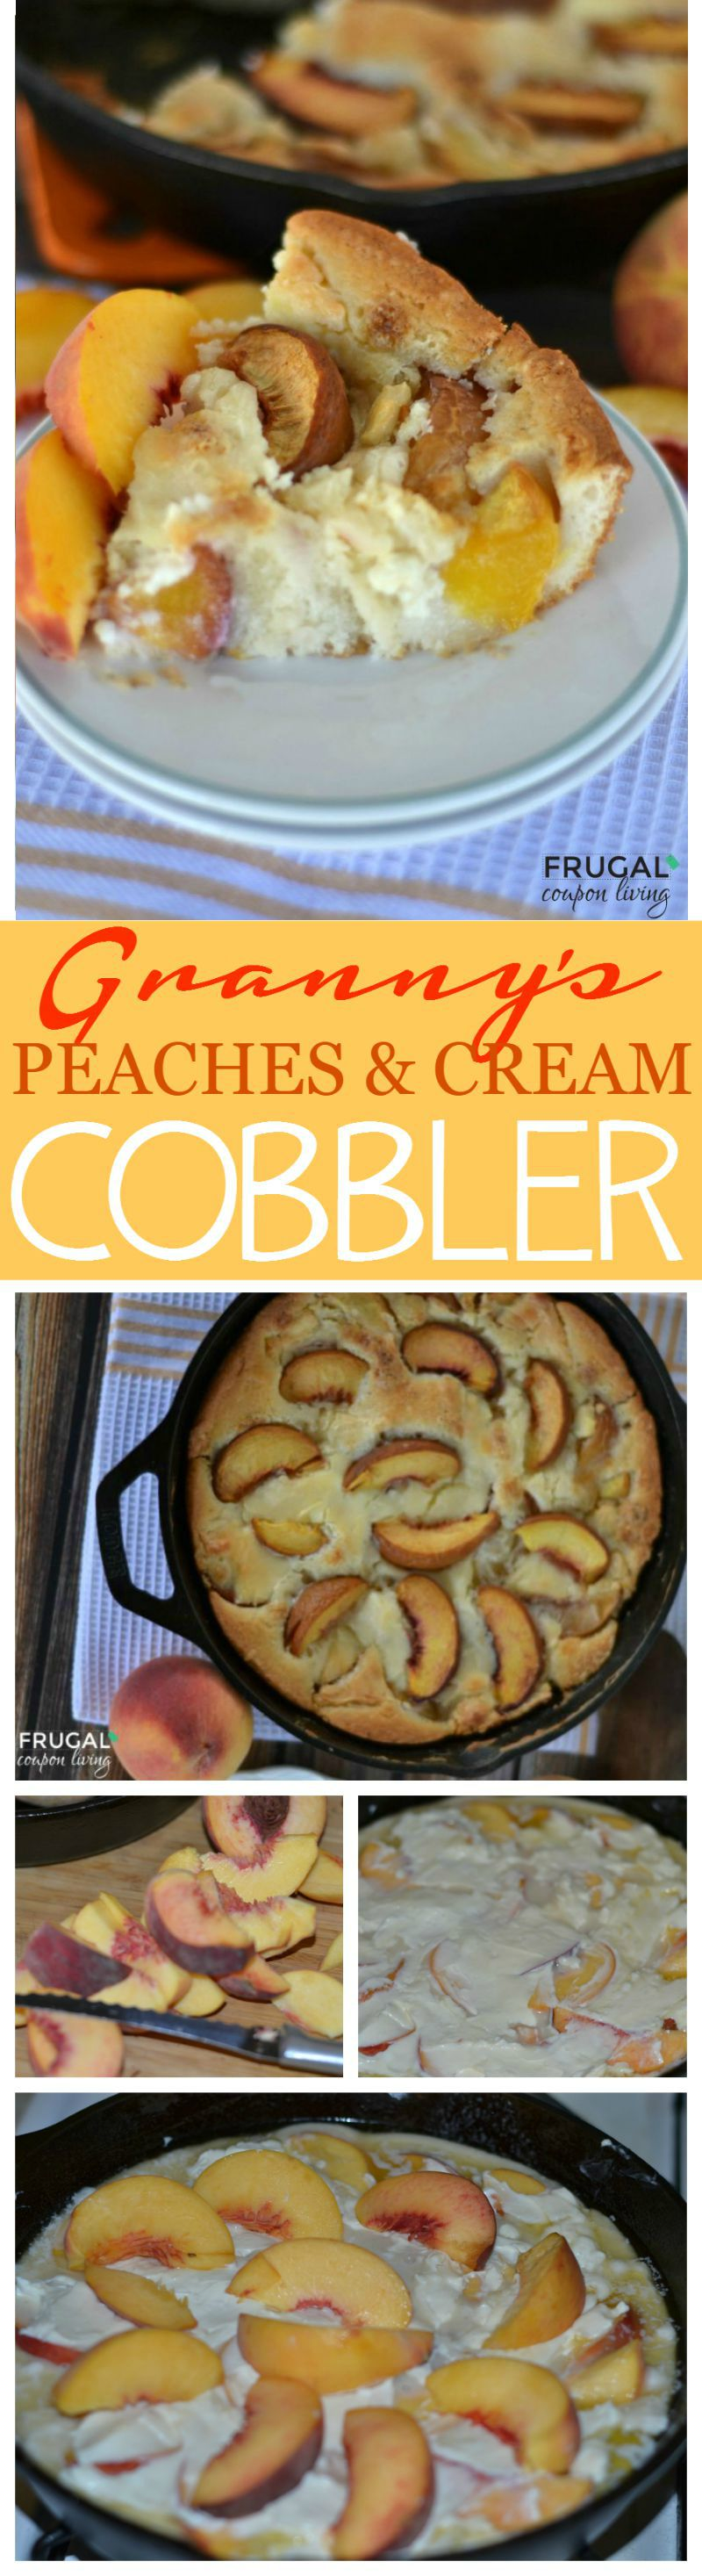 grannys-peaches-cream-cobbler-frugal-coupon-living-collage